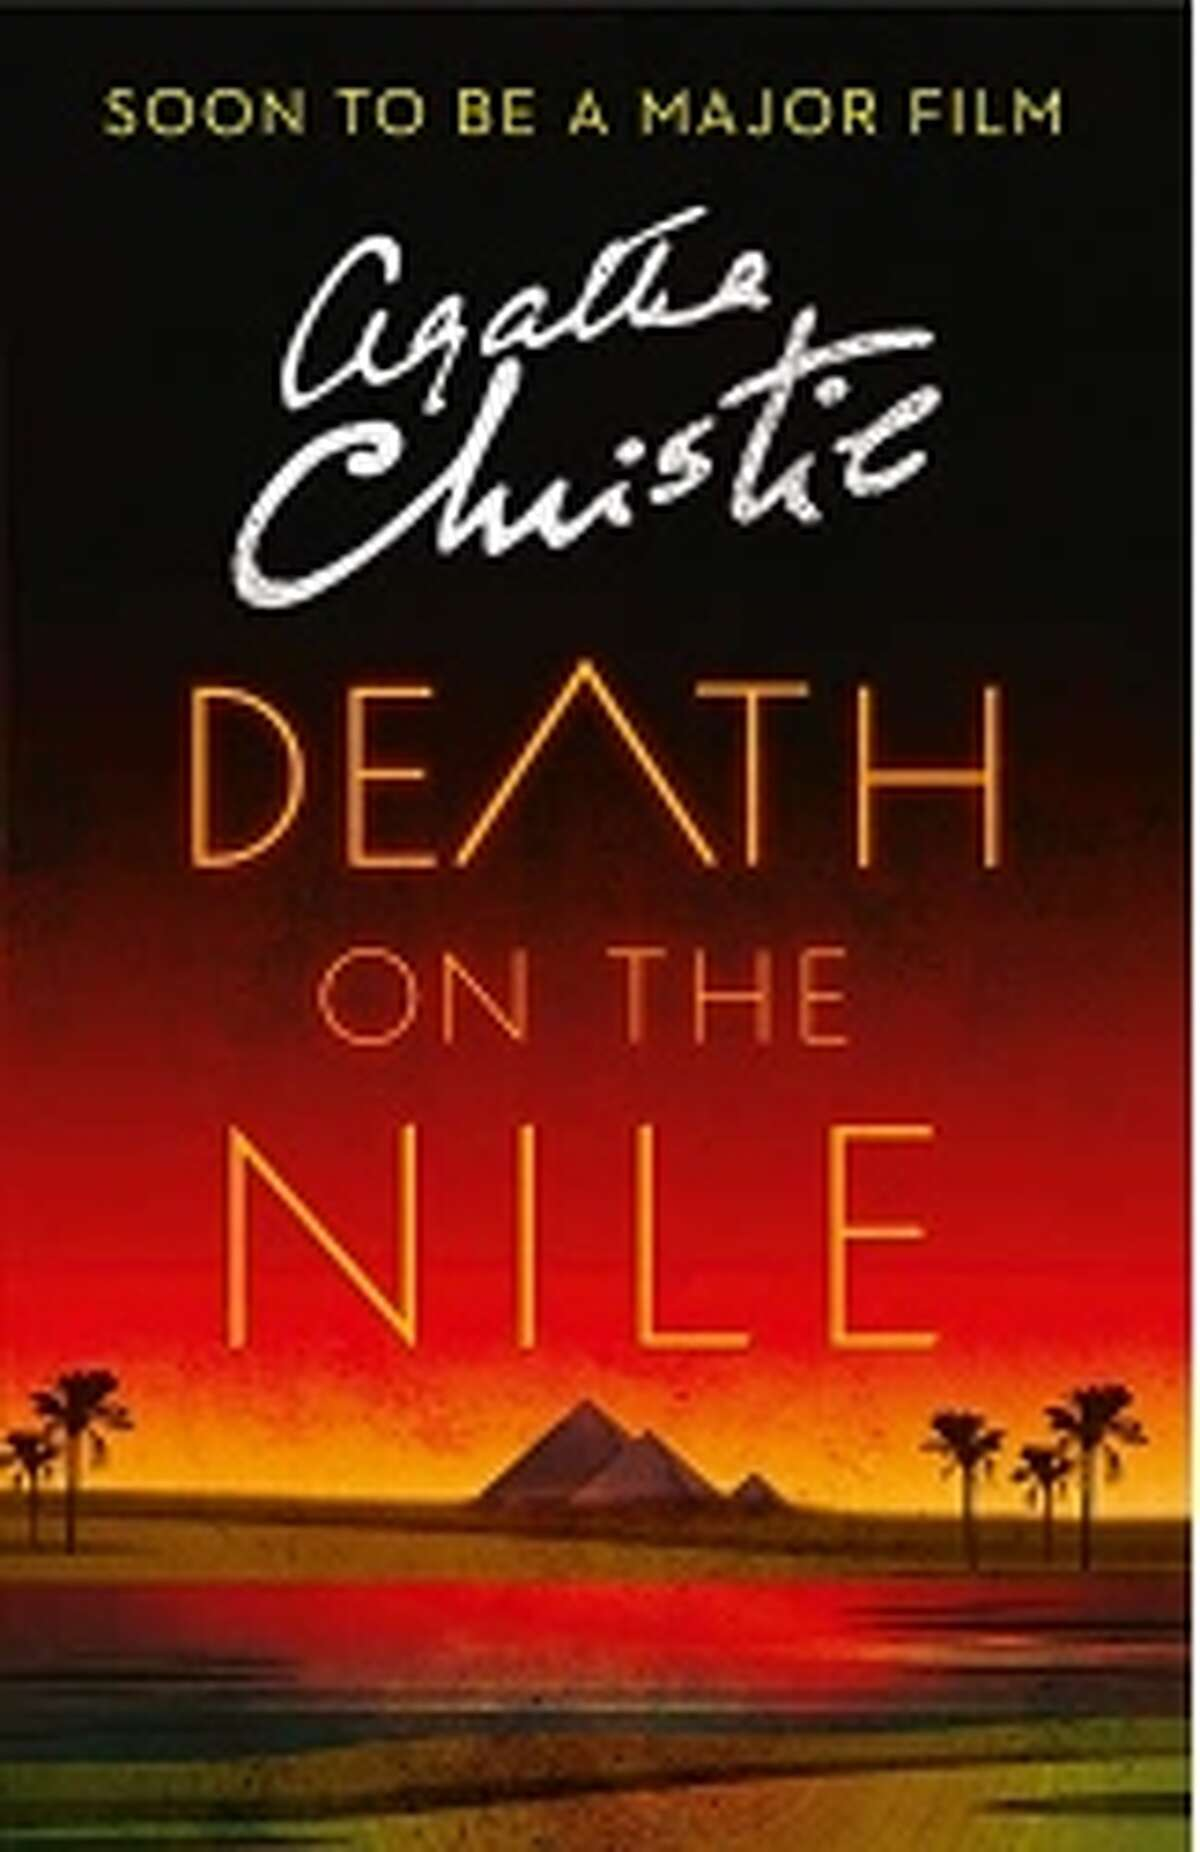 """Death on the NileA follow up to the 2017 hit """"Murder on the Orient Express"""" (also directed by, and starring, Kenneth Branagh), """"Death on the Nile"""" will adapt another Agatha Christie novel, again star Kenneth Branagh as Inspector Hercule Peroit, and will, once more, be directed by Branagh, who is apparently a really busy guy these days.""""Death on the Nile"""" is scheduled for release on October 9, 2020, but in the meantime you can buy """"Death on the Nile"""" on Kindle, Audiobook, Hardcover and Paperback at Amazon."""